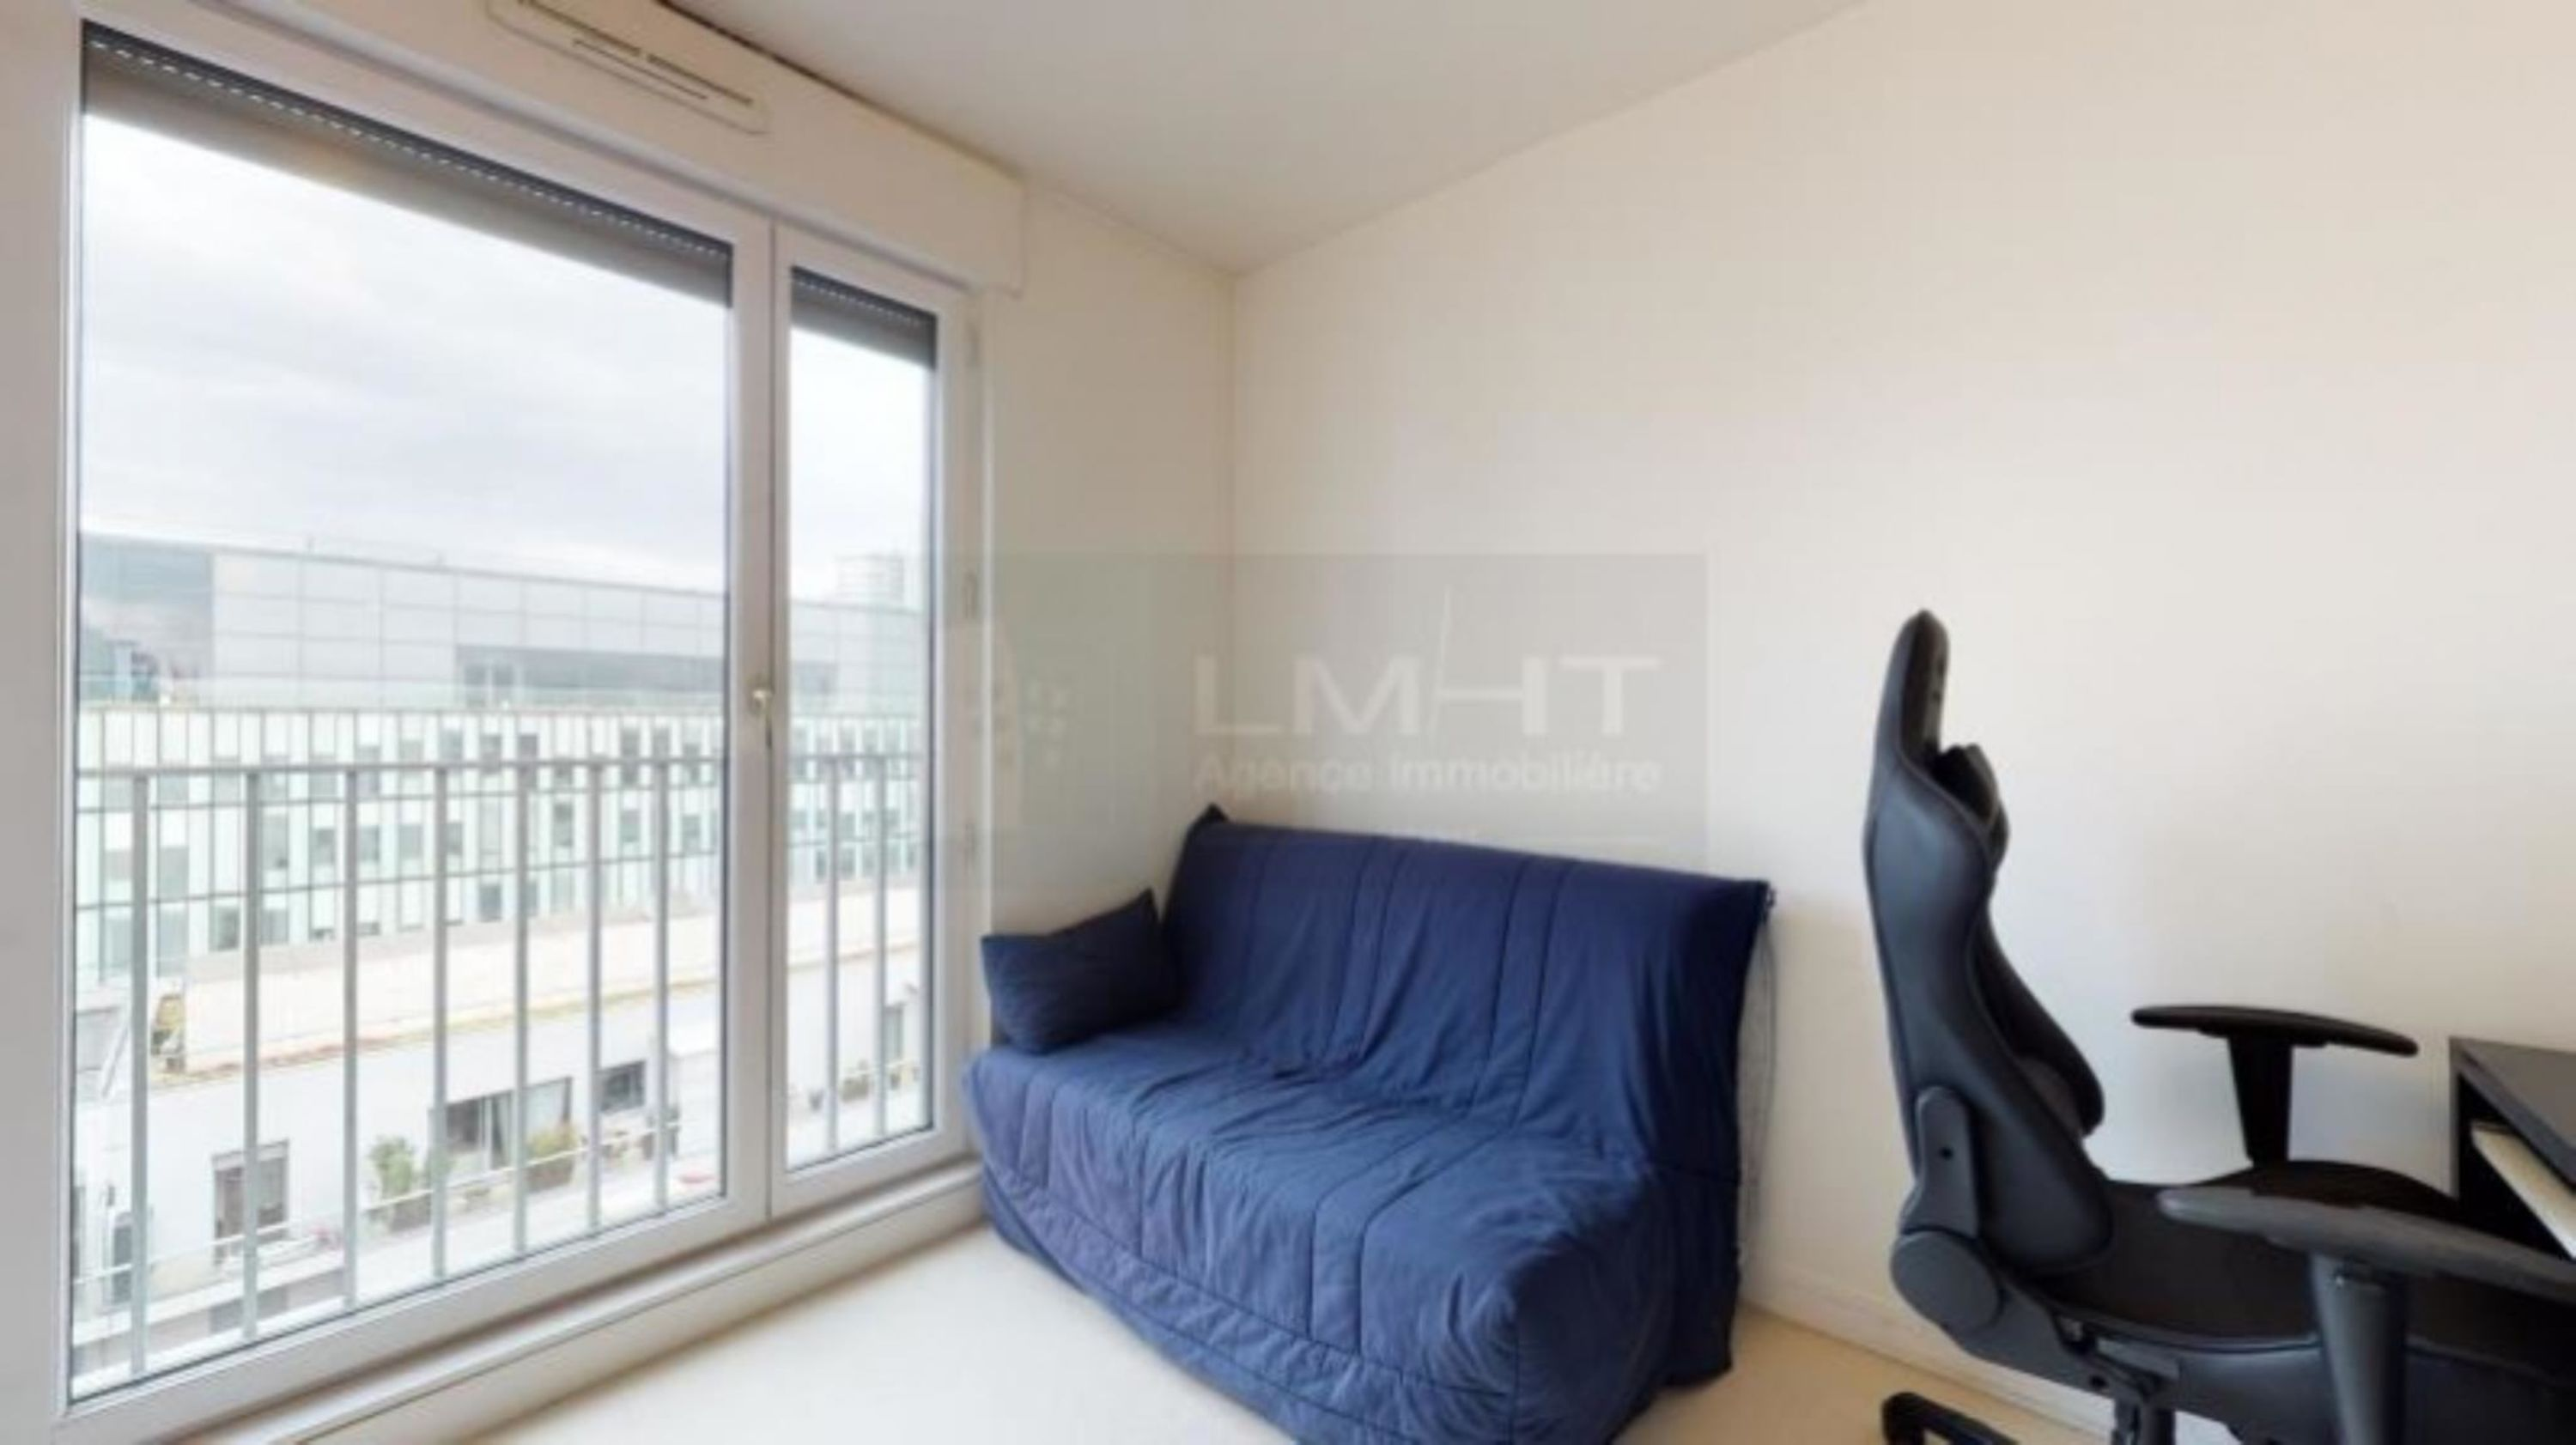 agence immobilière sevres 92 le chesnay 78 achat vente location appartement maison immobilier LMHT ANF ZBCTHTJY